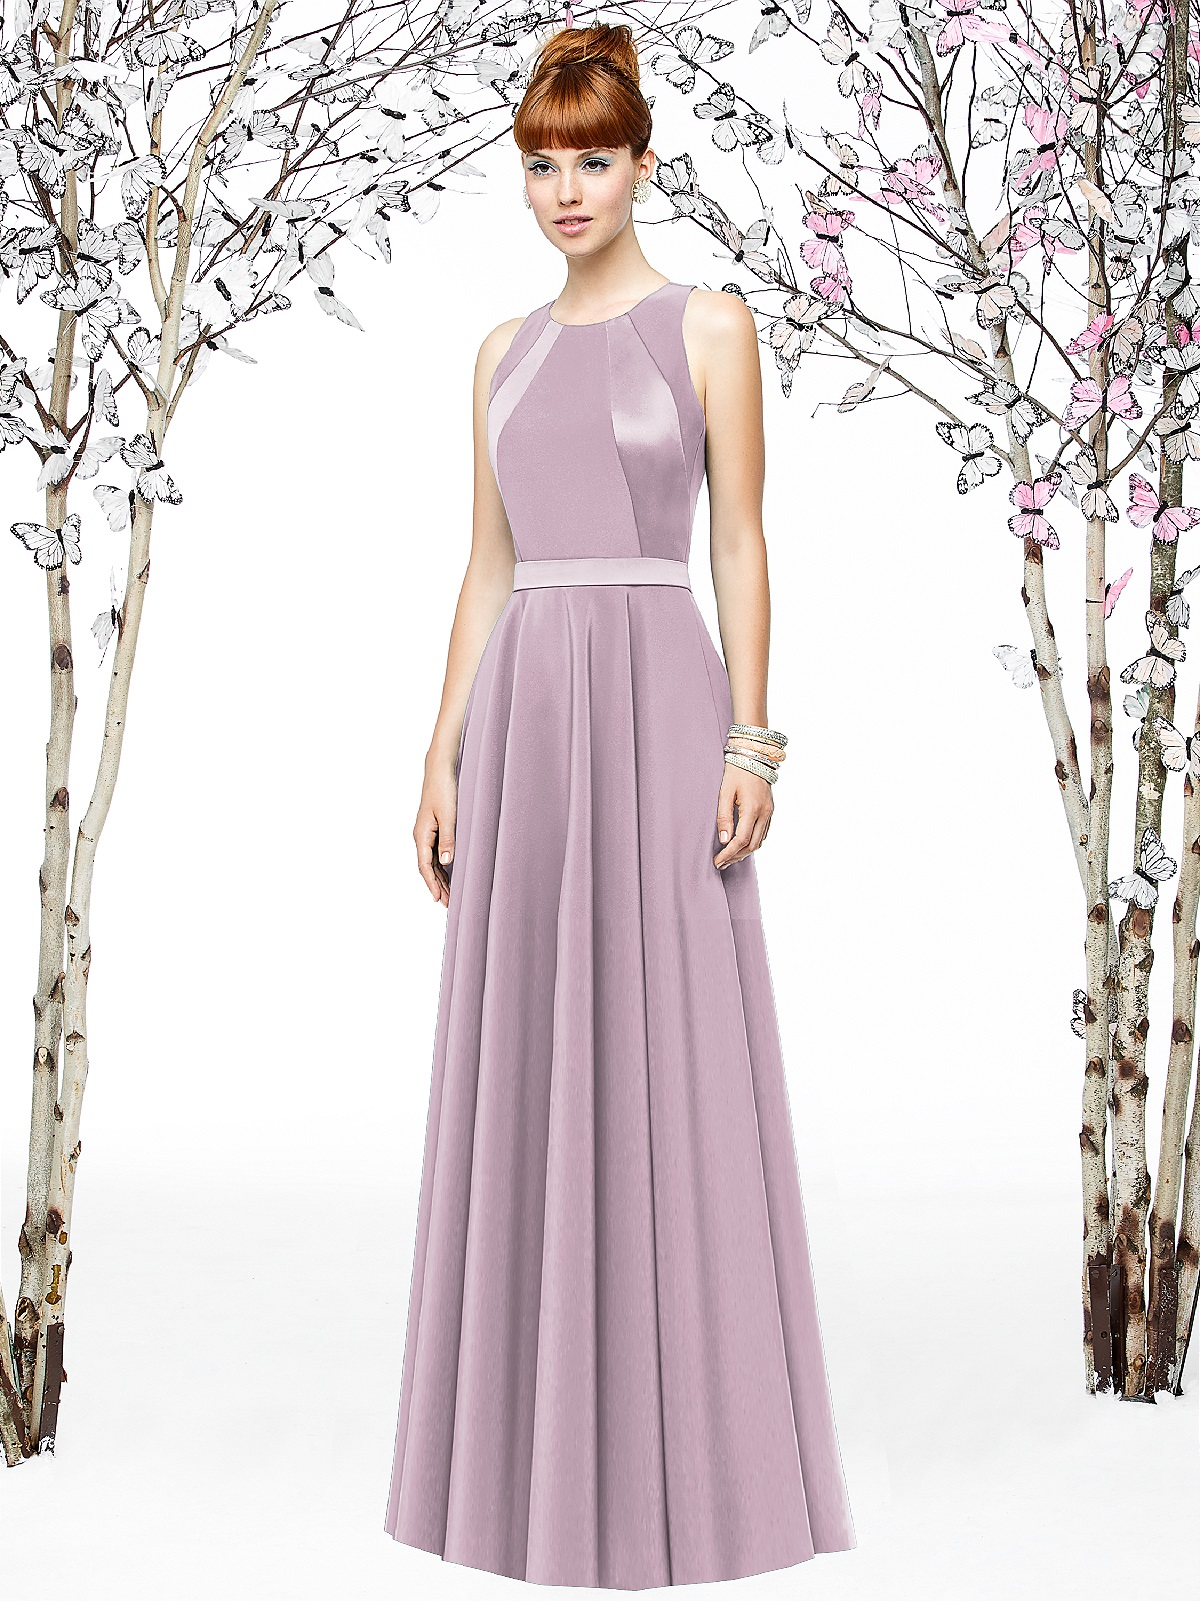 Rose colored bridesmaid dresses wedding short dresses rose colored bridesmaid dresses 76 ombrellifo Image collections